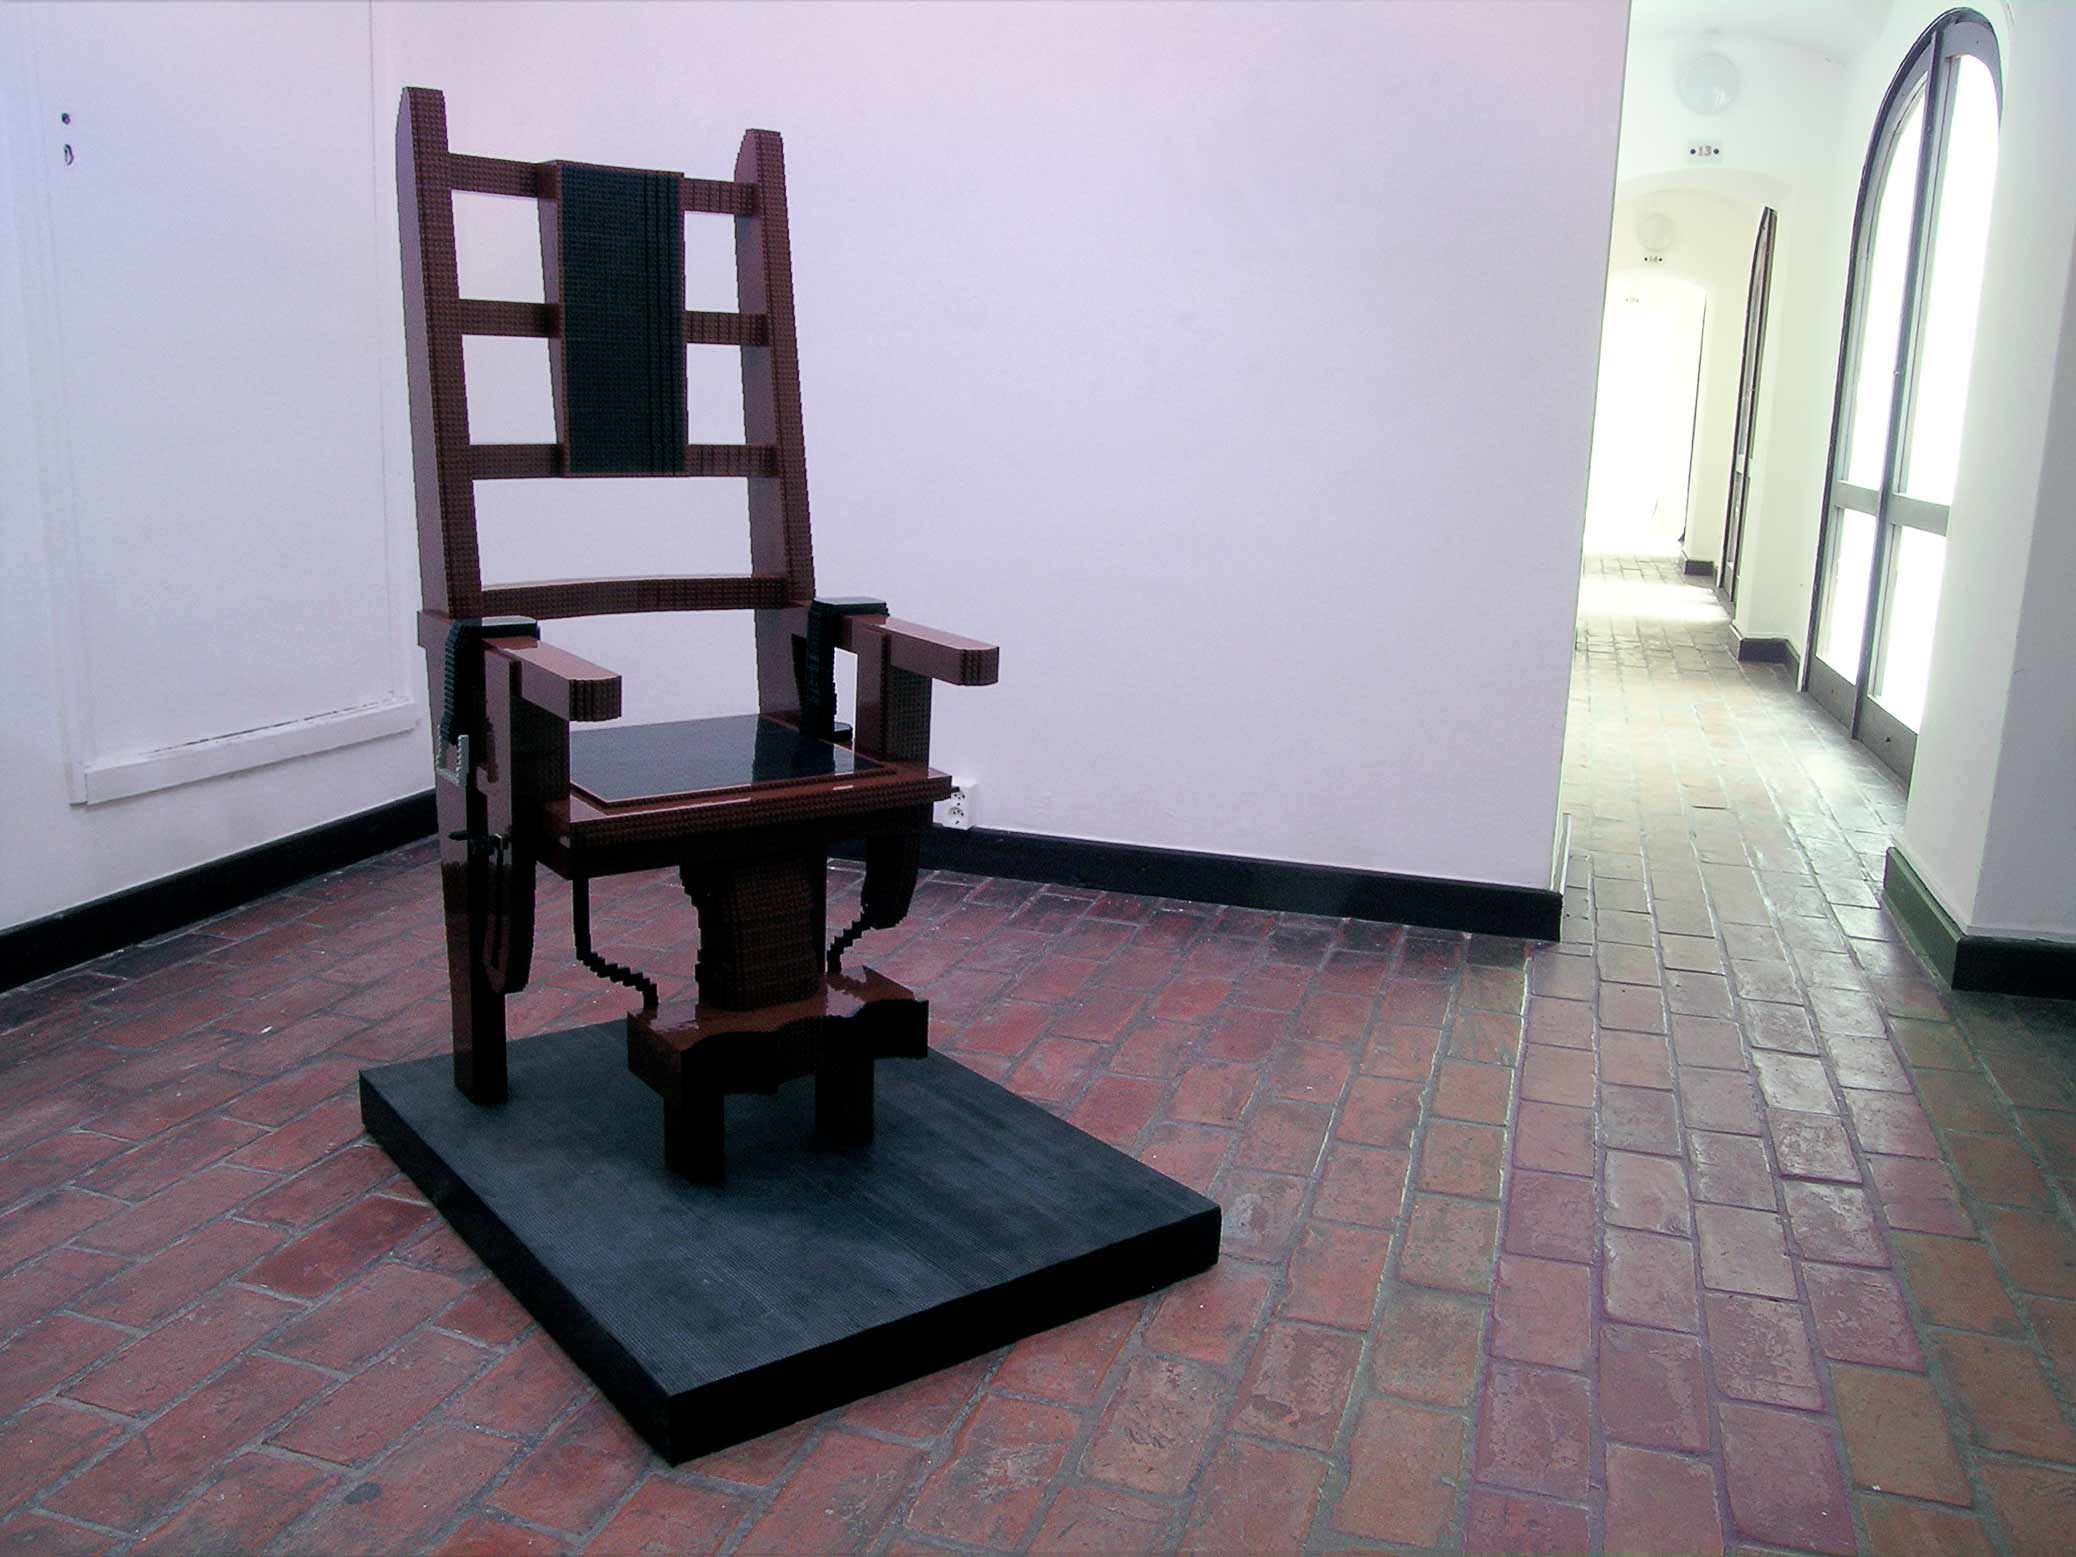 Electric Chair, sculpture made from LEGO, at Budapest Galéria Kiálítóháza.